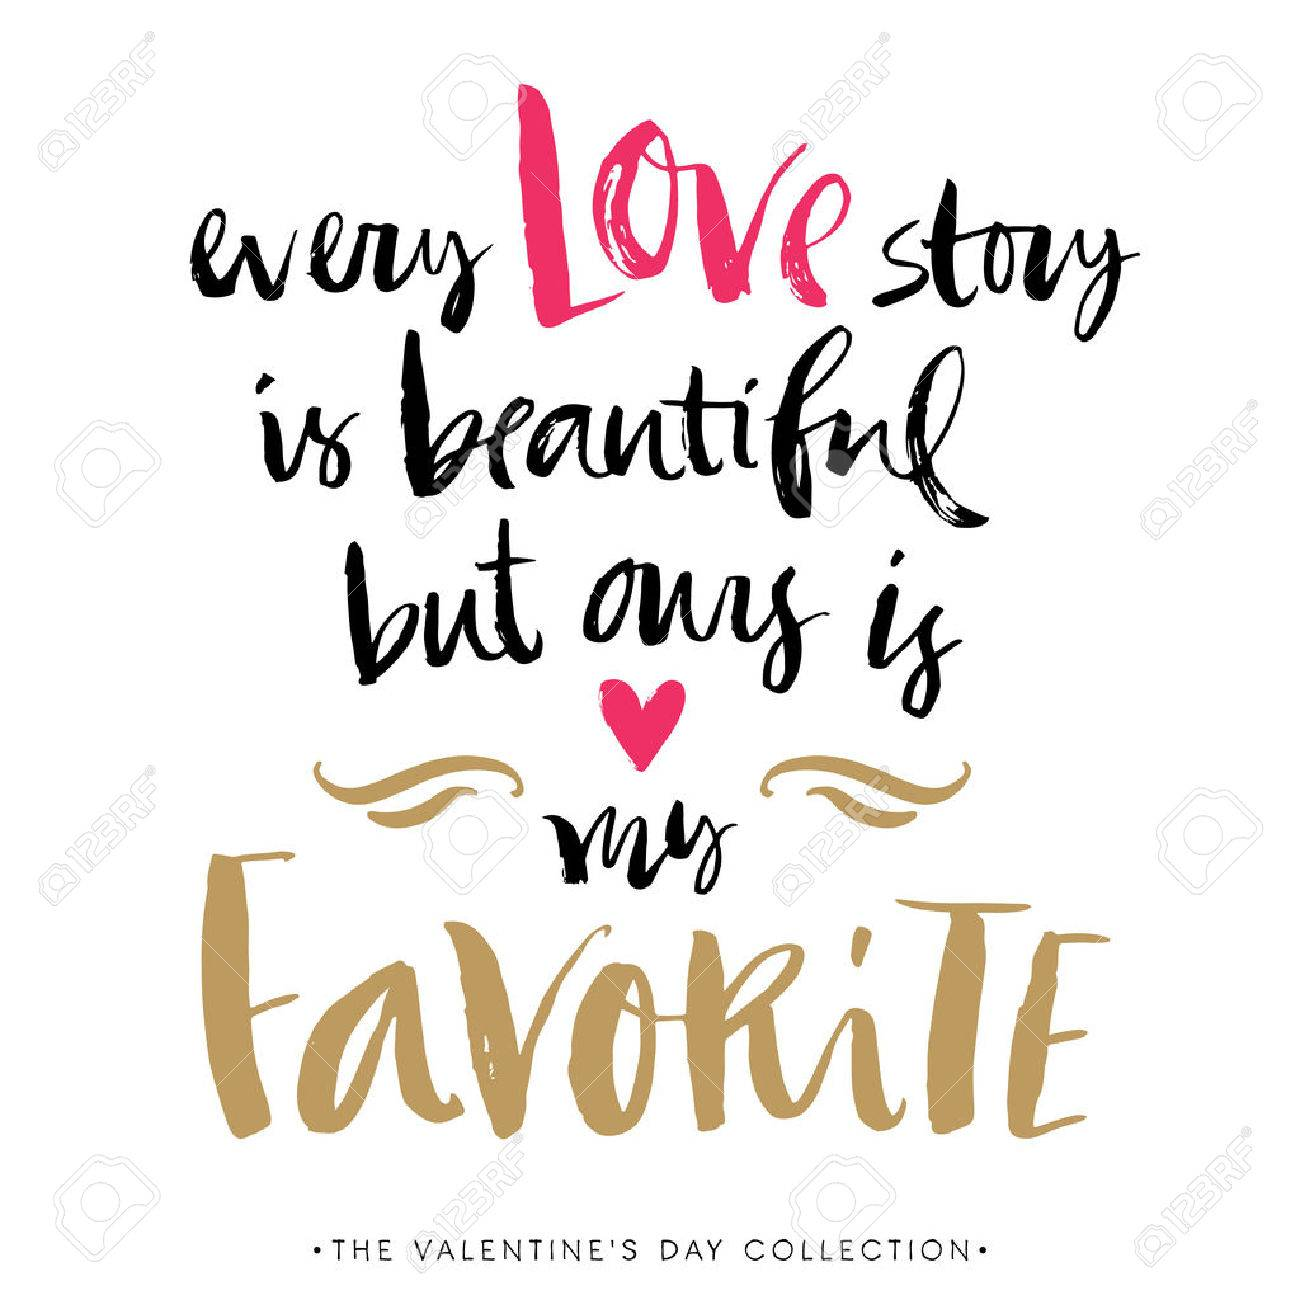 Every Love story is beautiful but ours is my favorite. Valentines day greeting card with calligraphy. Hand drawn design elements. Handwritten modern brush lettering. - 50909213